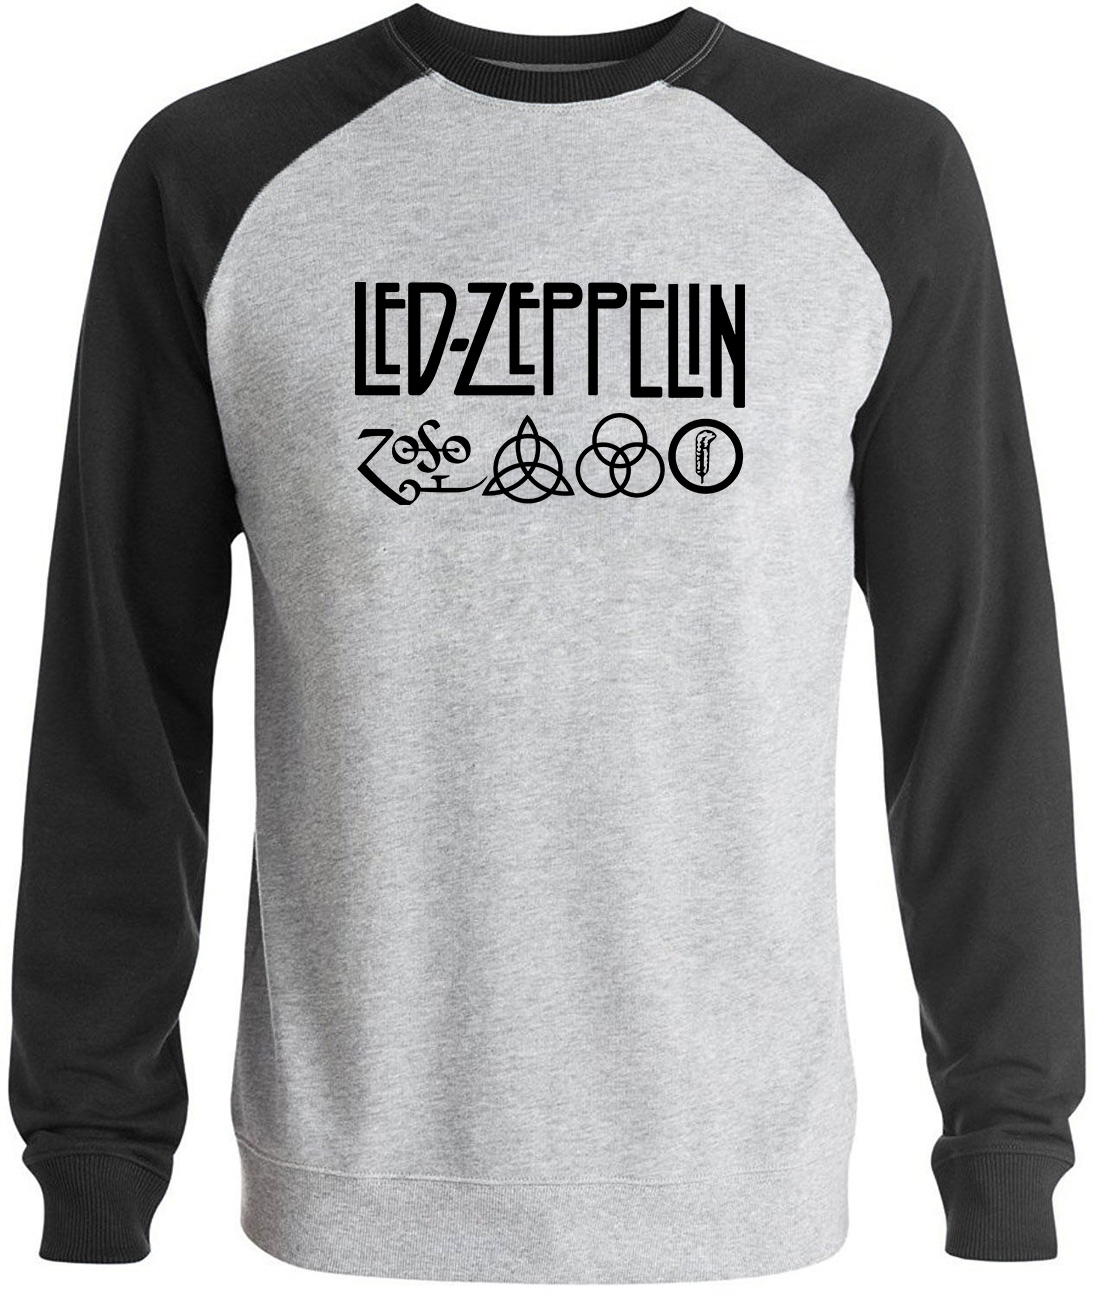 Rock And Roll Led Zeppelin Rock Zoso Fleece Hoodies Heavy Metal Band Fan Punk Hoody Sweatshirts Pullover Hooded K-pop Tracksuits Men's Clothing